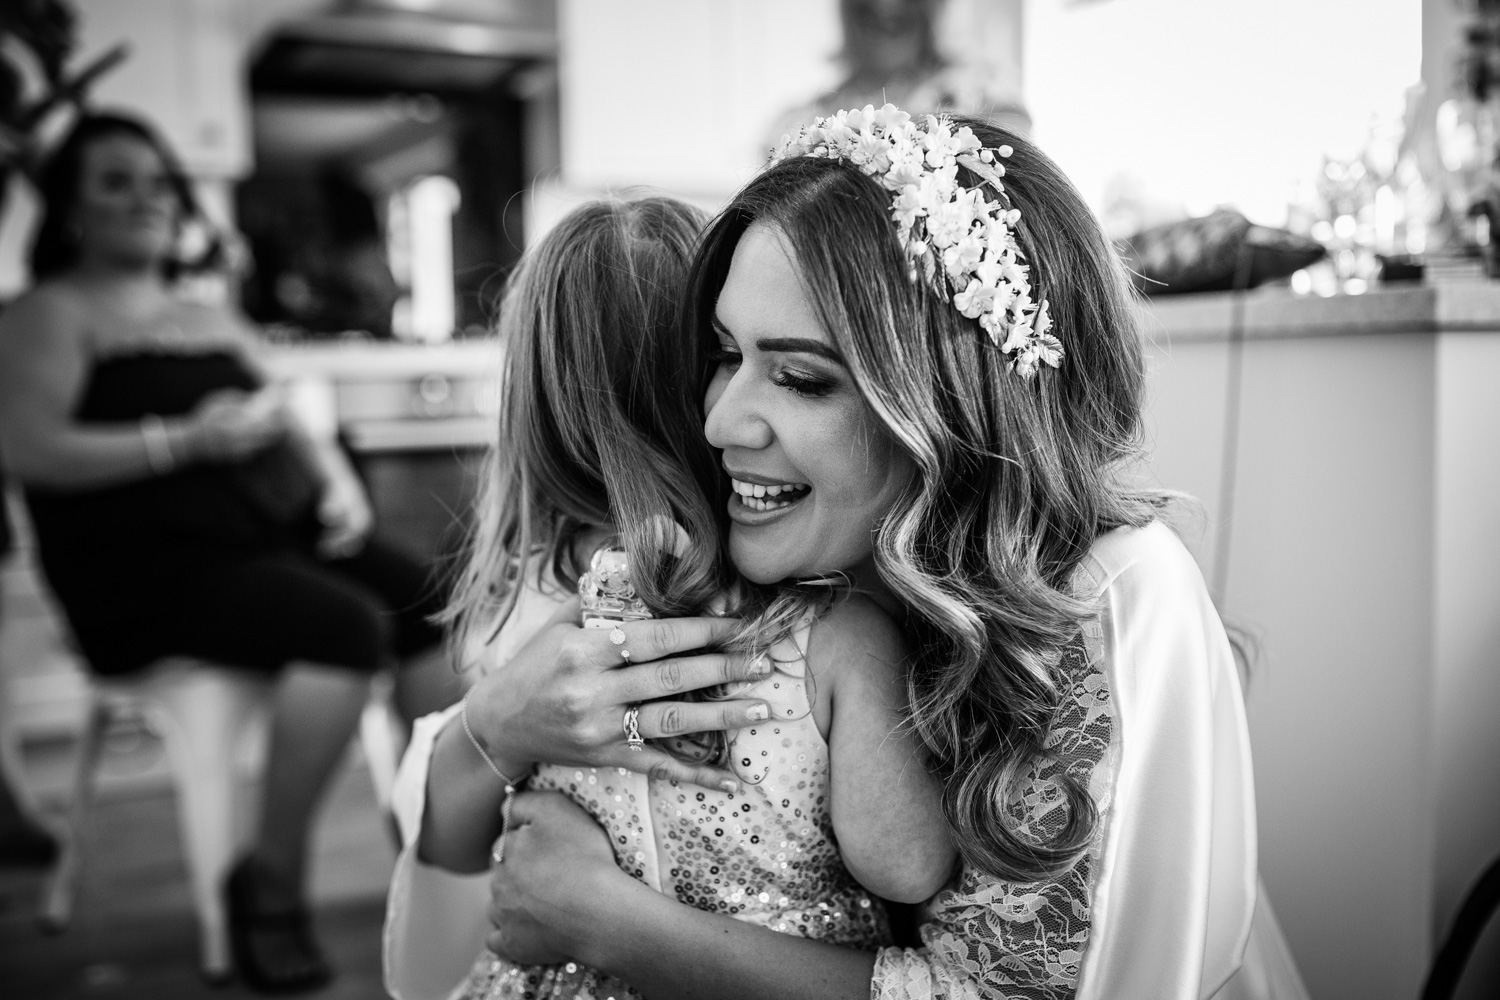 Big cuddles for the flower girl